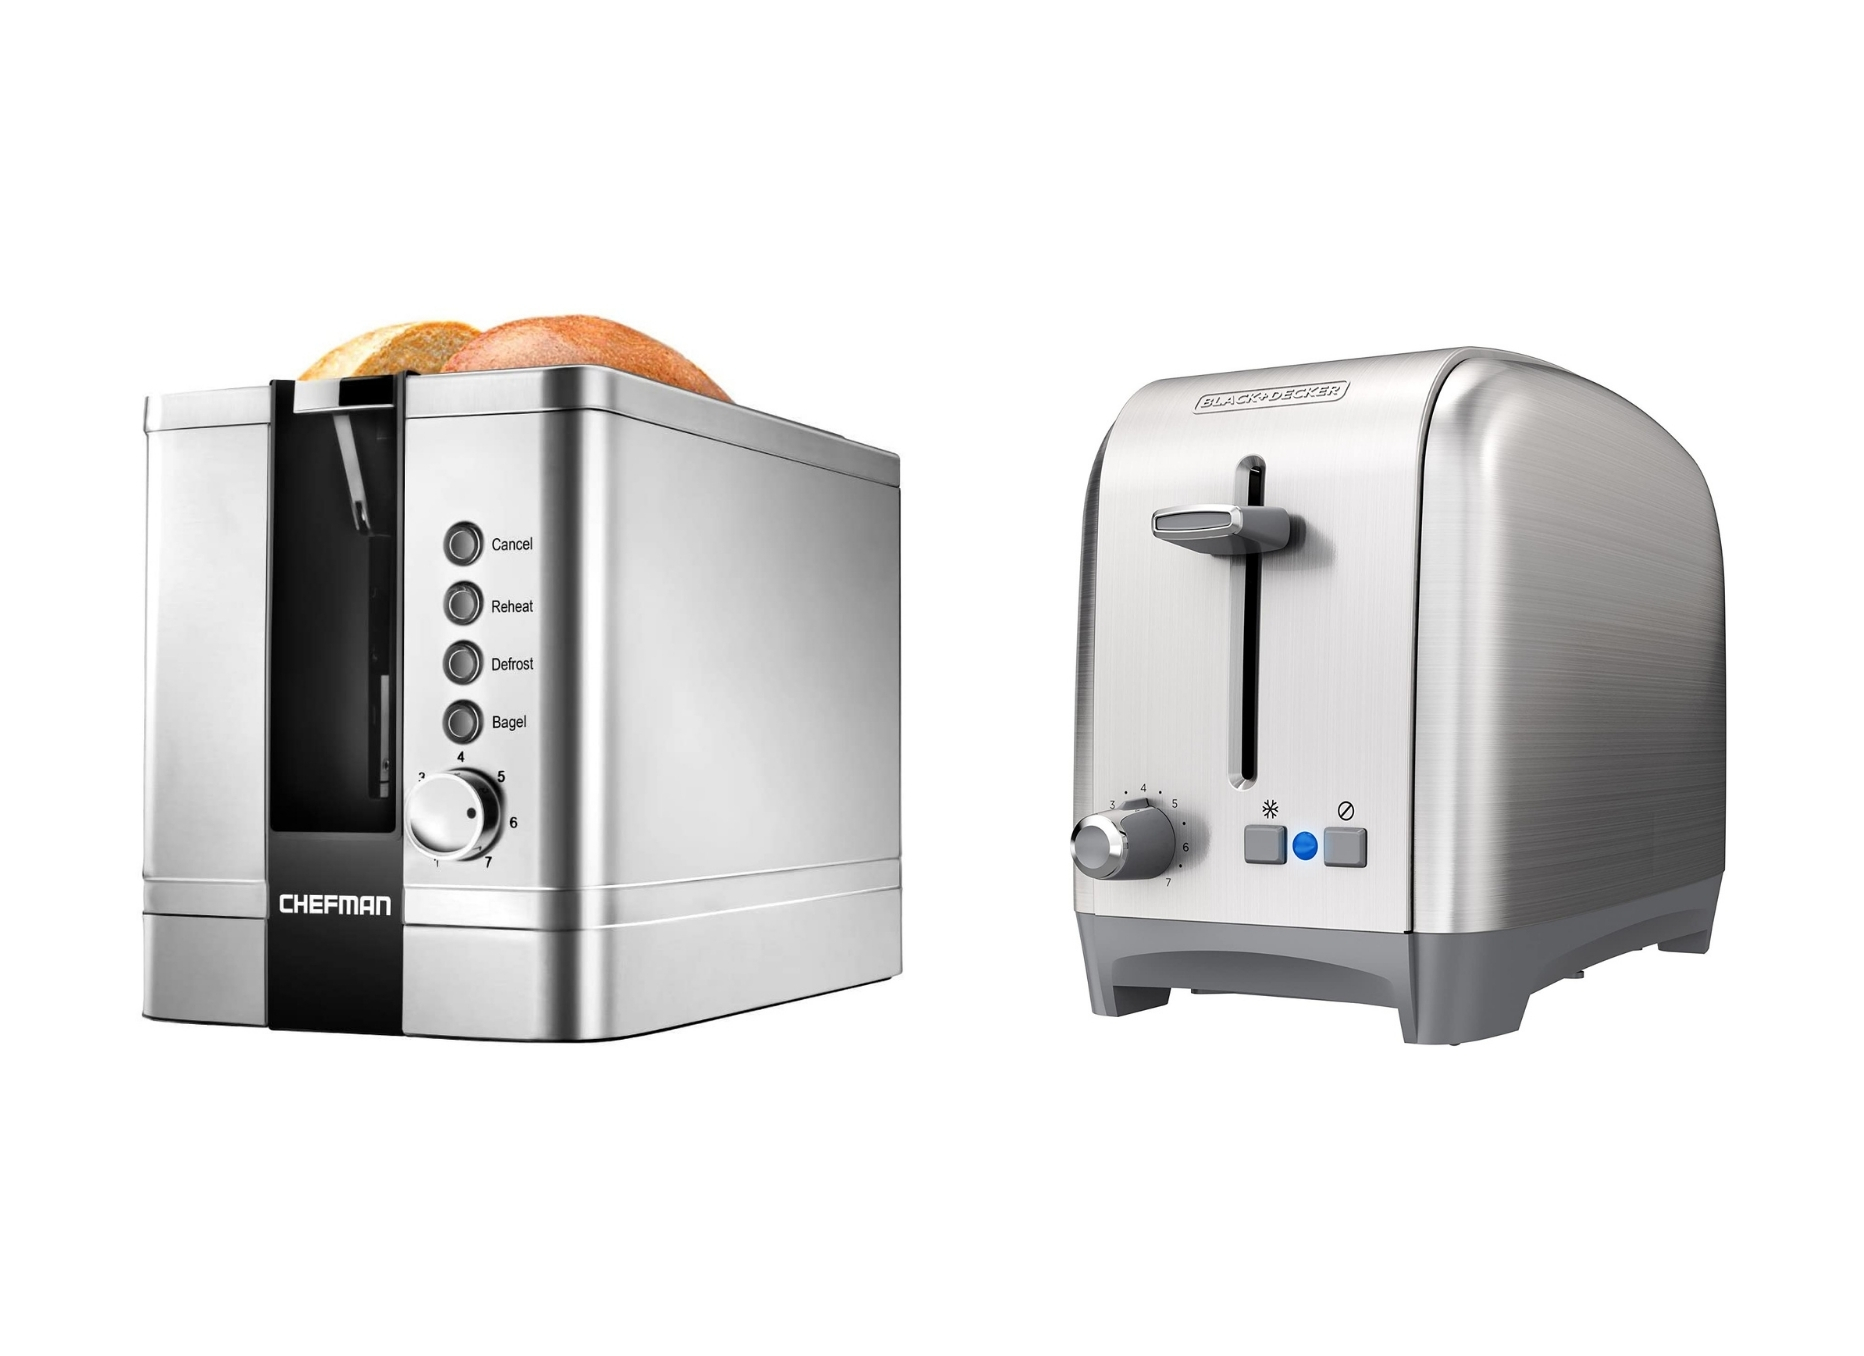 Chefman Toaster and Black and Decker Toaster